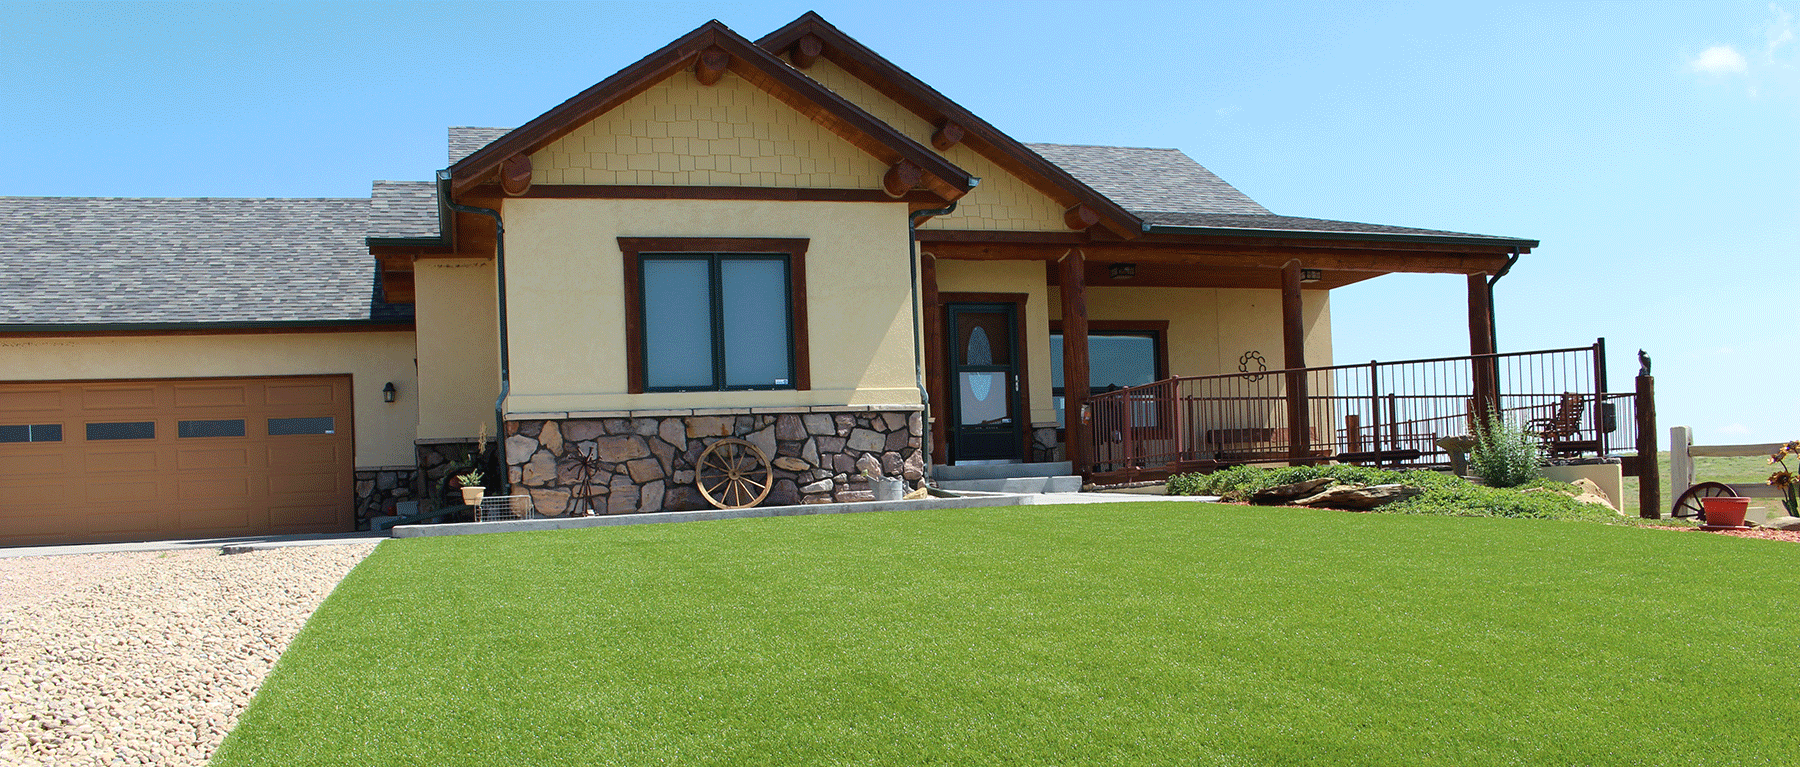 Artificial grass Colorado Springs